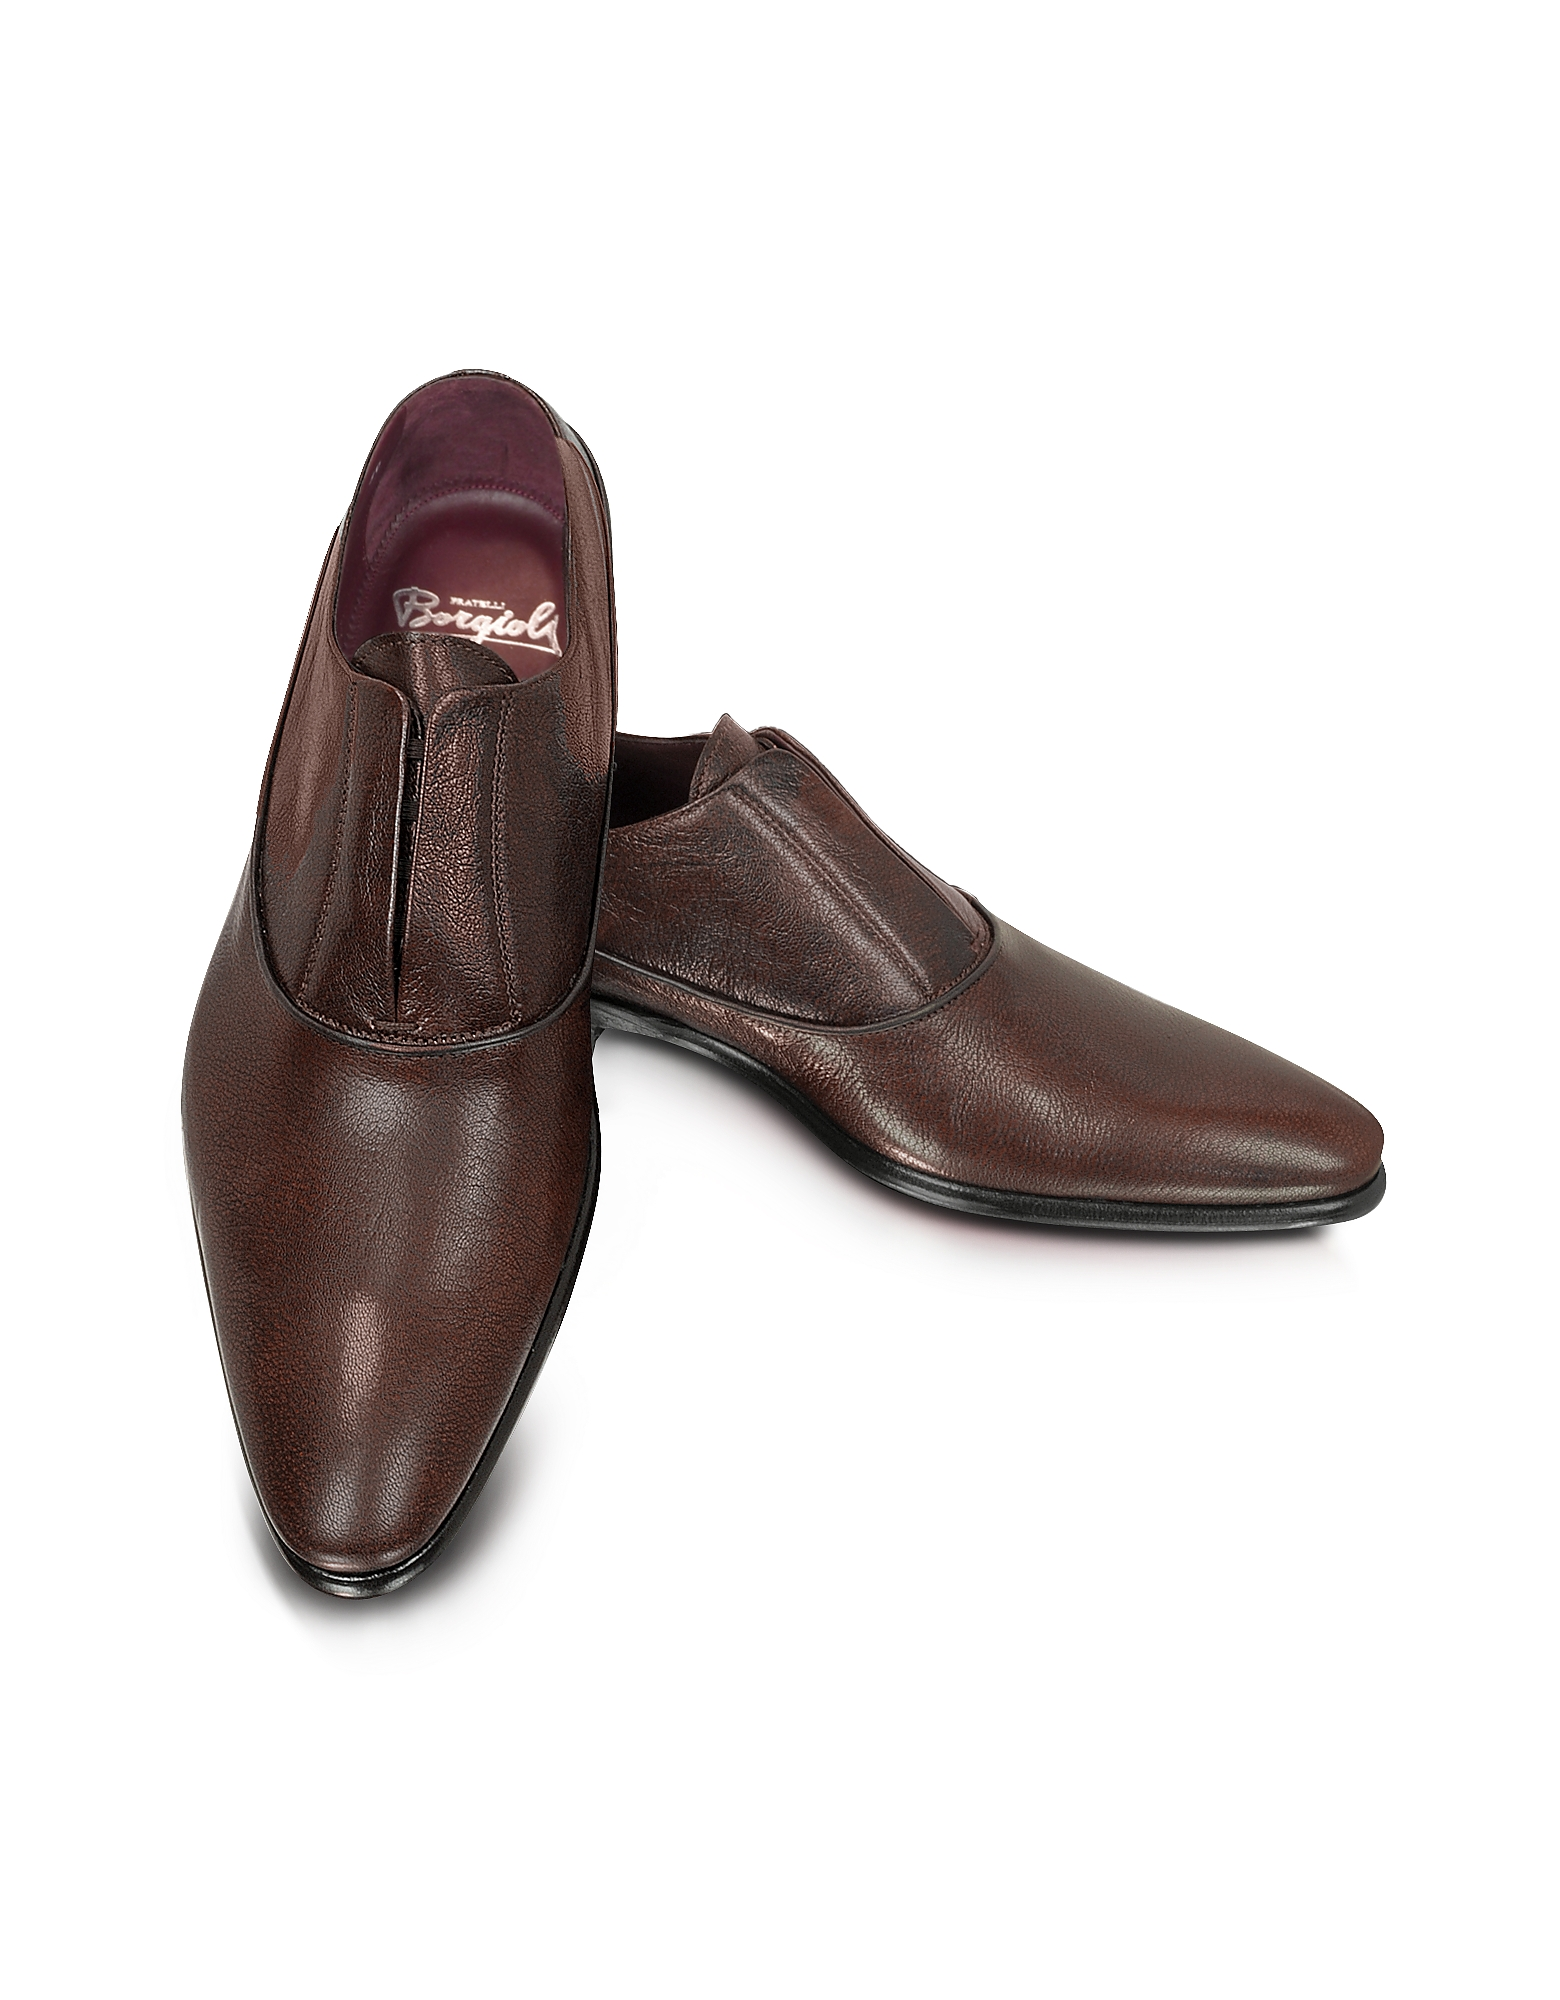 Fratelli Borgioli Shoes, Treno - Laceless Leather Oxford